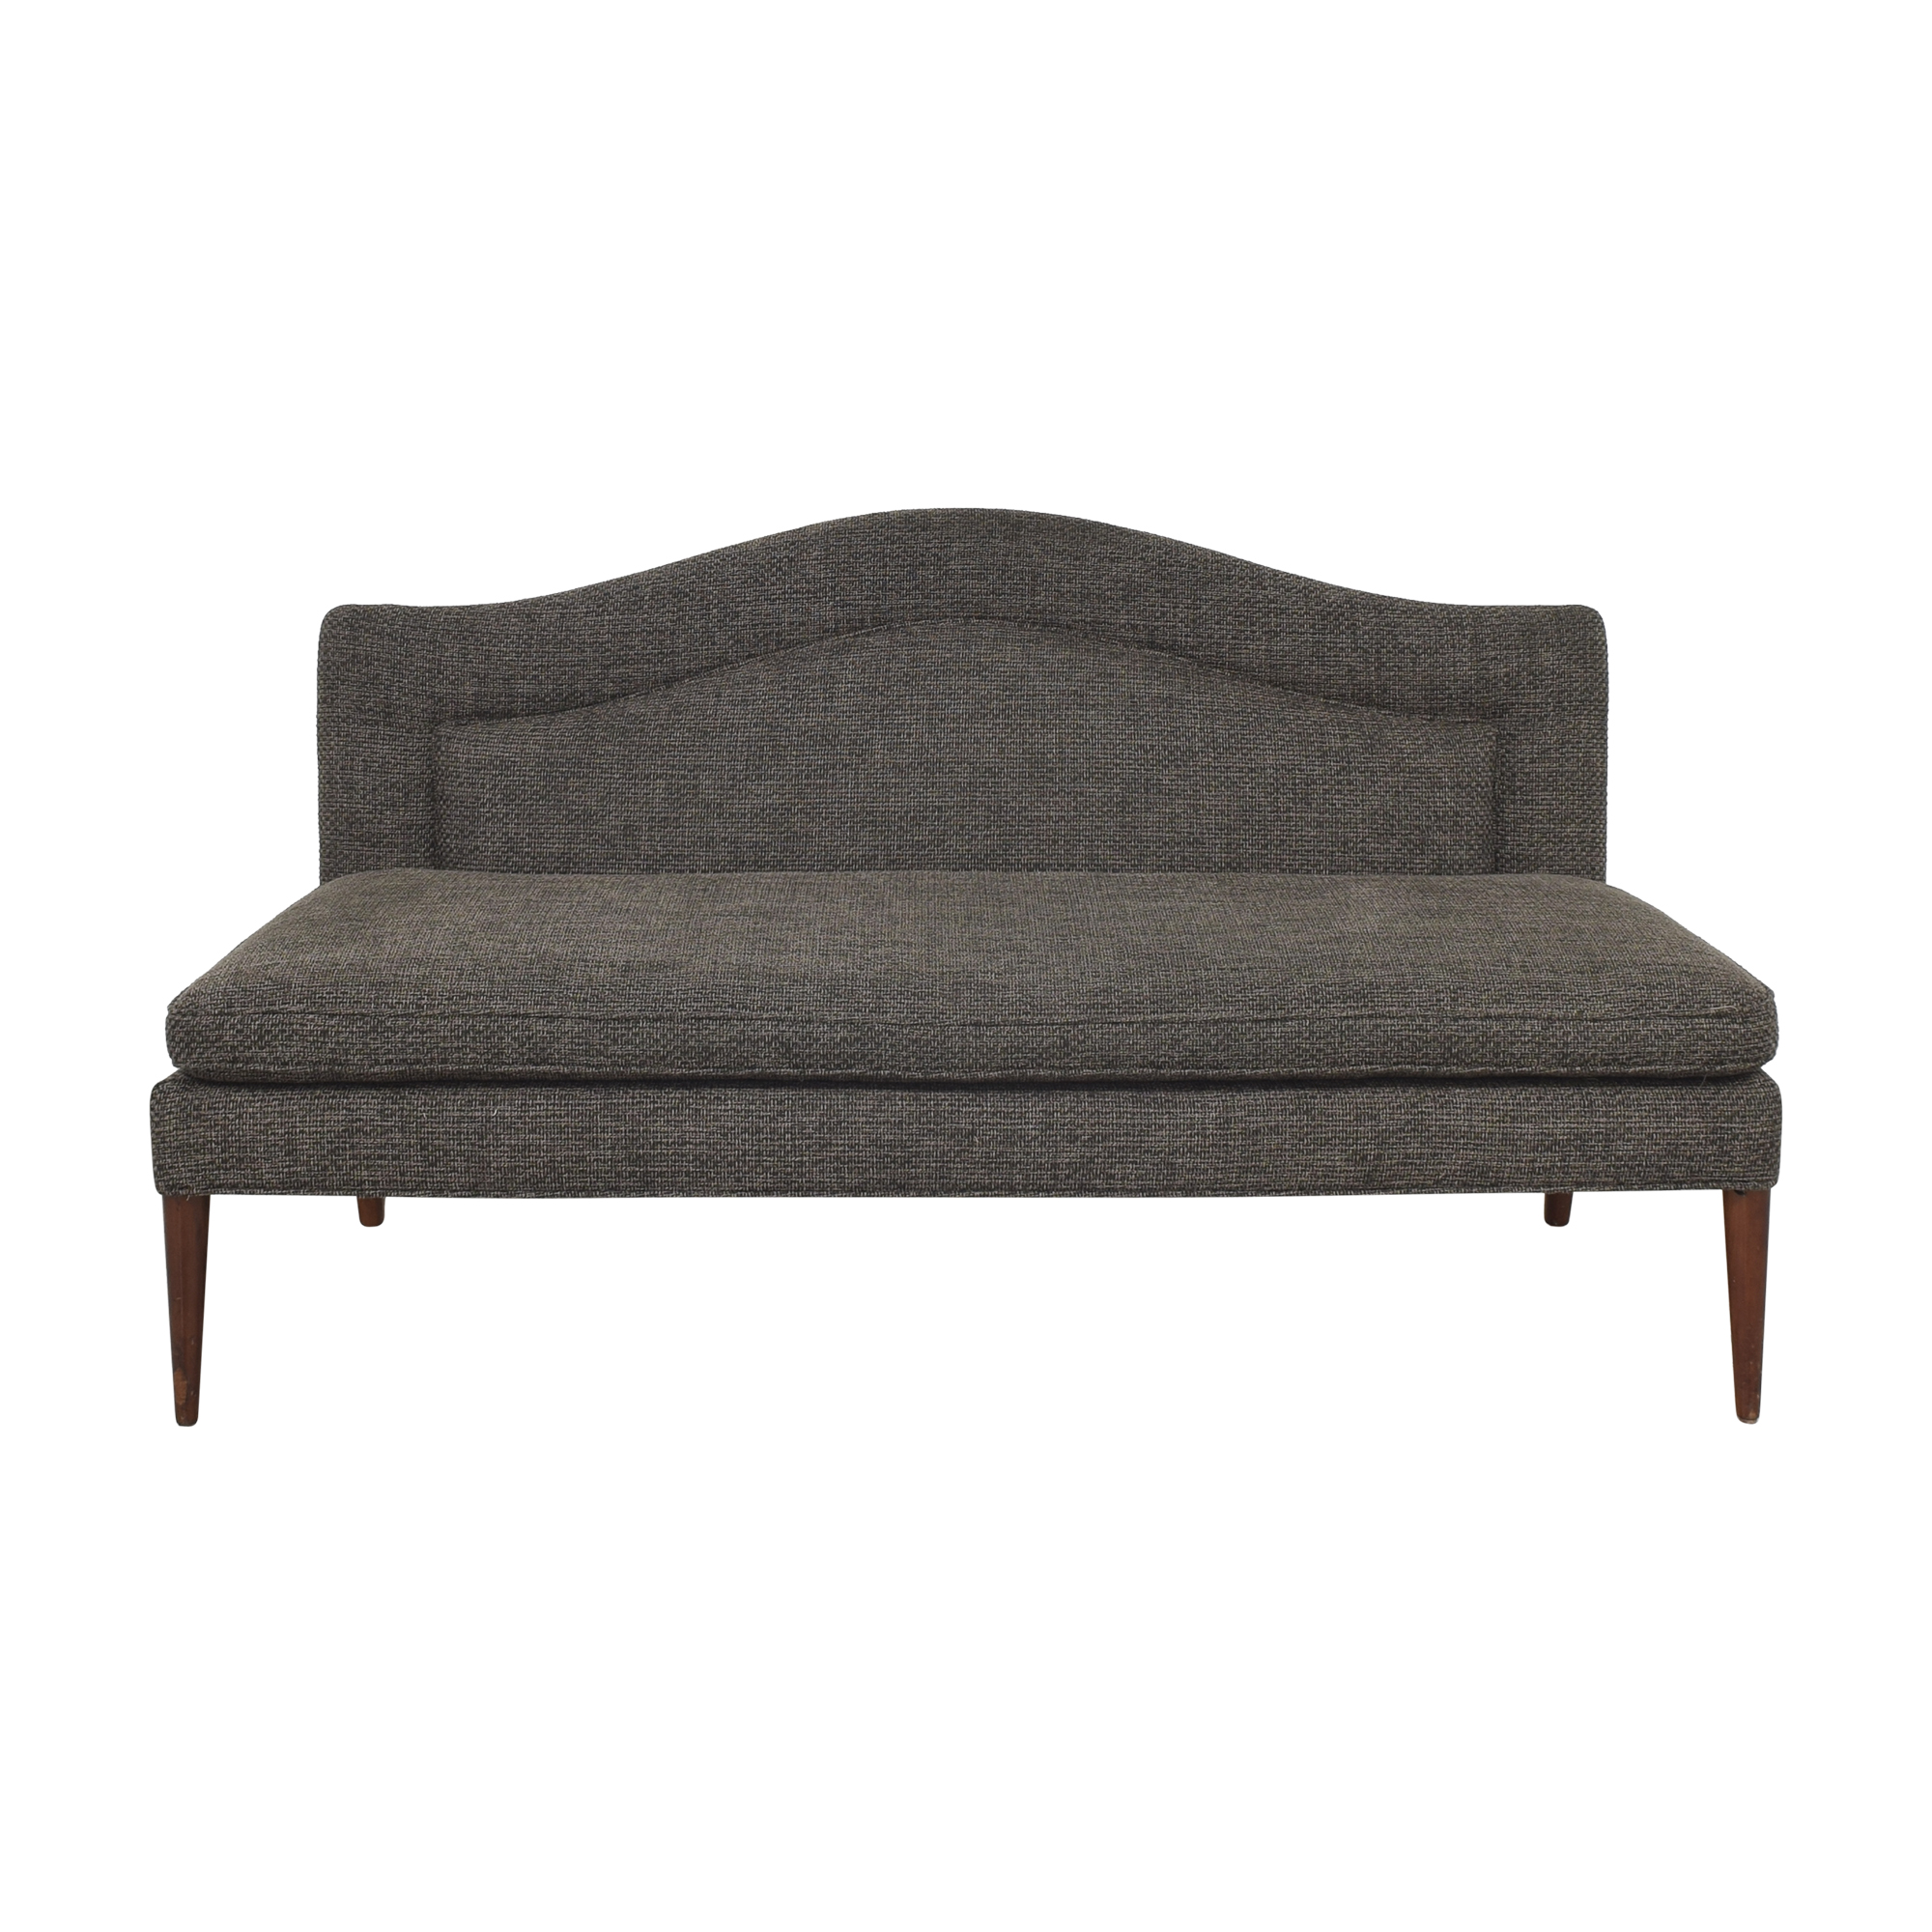 Bright Bright Upholstered Bench grey